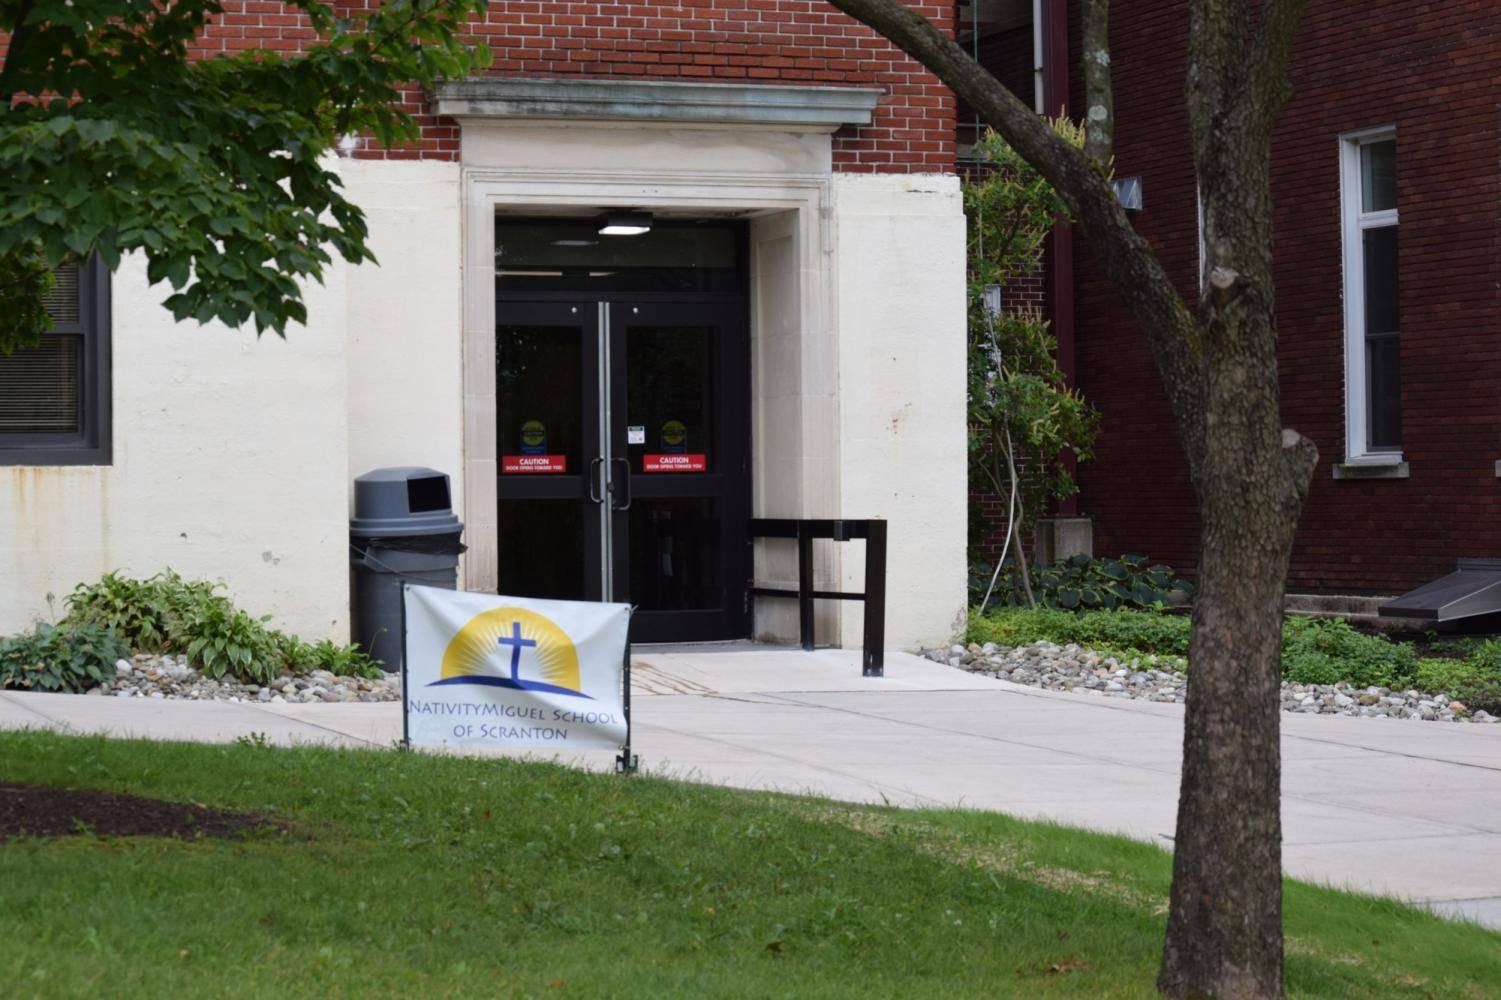 The right-wing on the first floor of the Liberal Arts Center will have four classrooms and an administrative office. The former